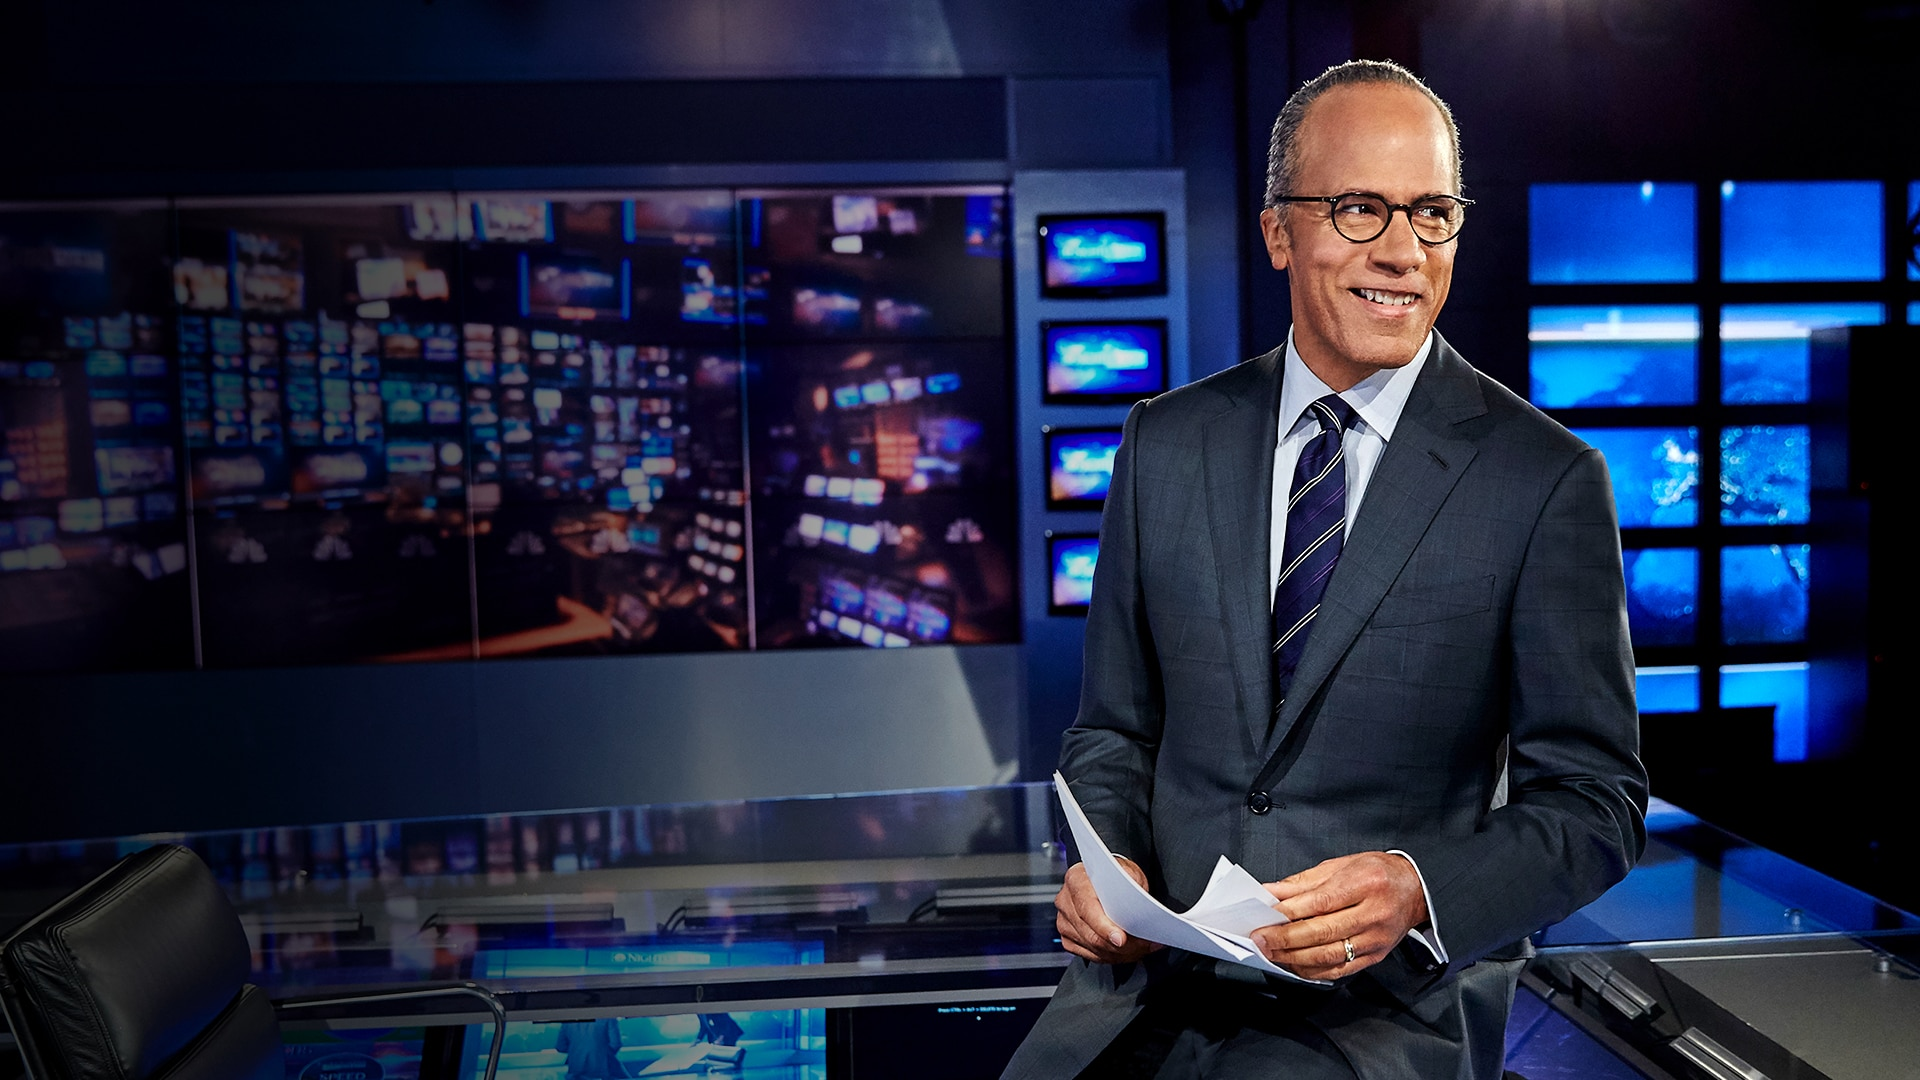 Watch NBC Nightly News with Lester Holt Episodes - NBC com